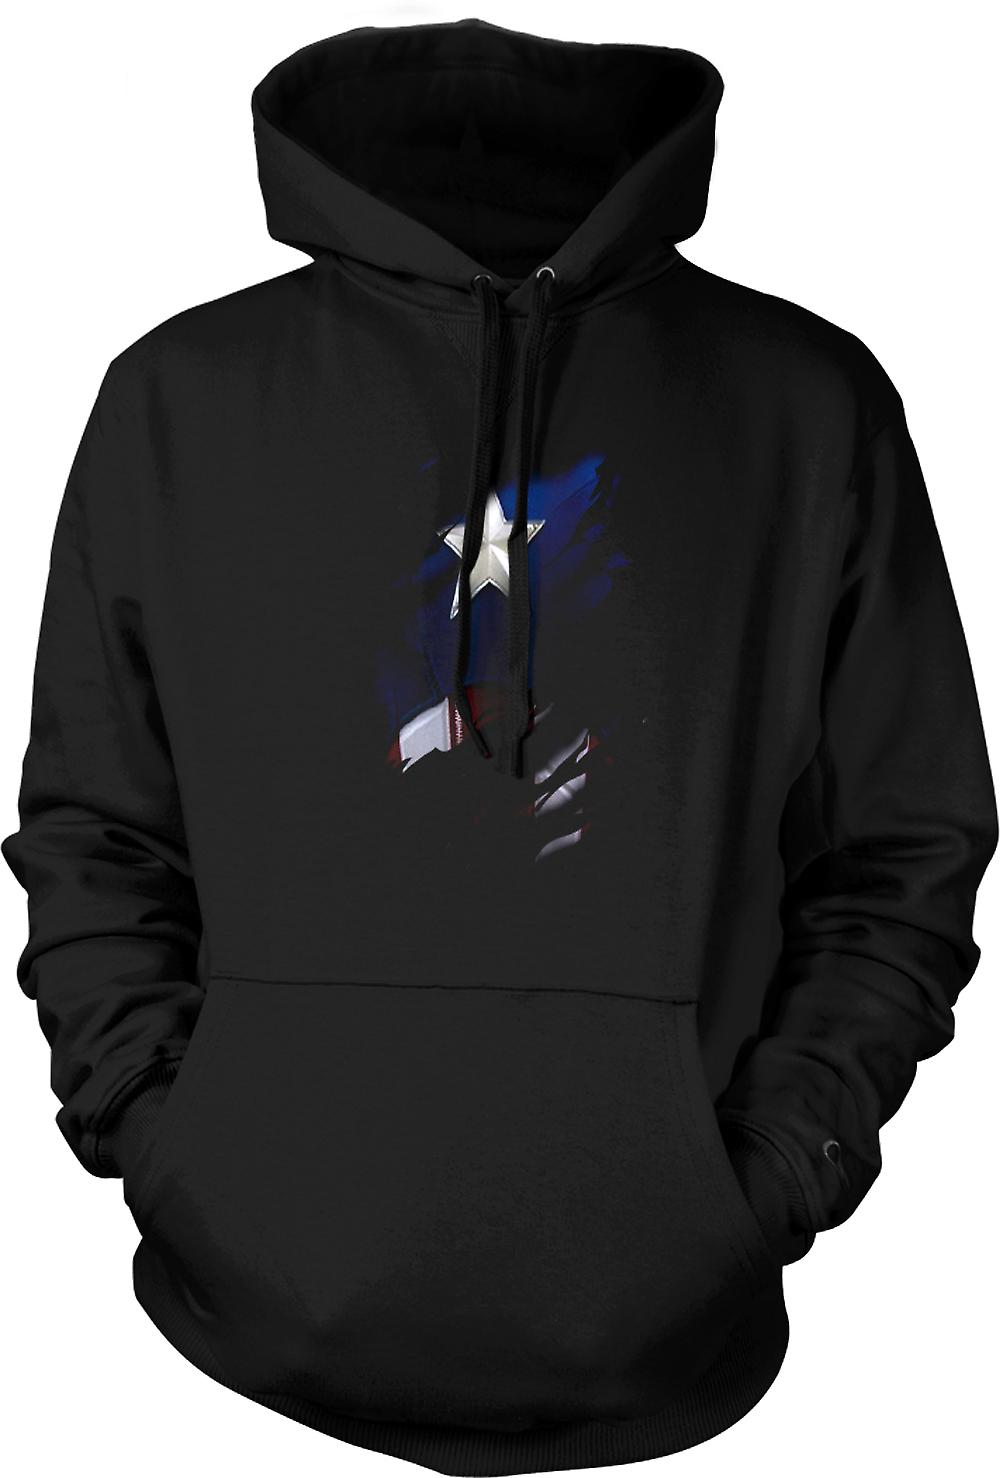 Mens hettegenser - Retro Captain America Super helten dratt Design